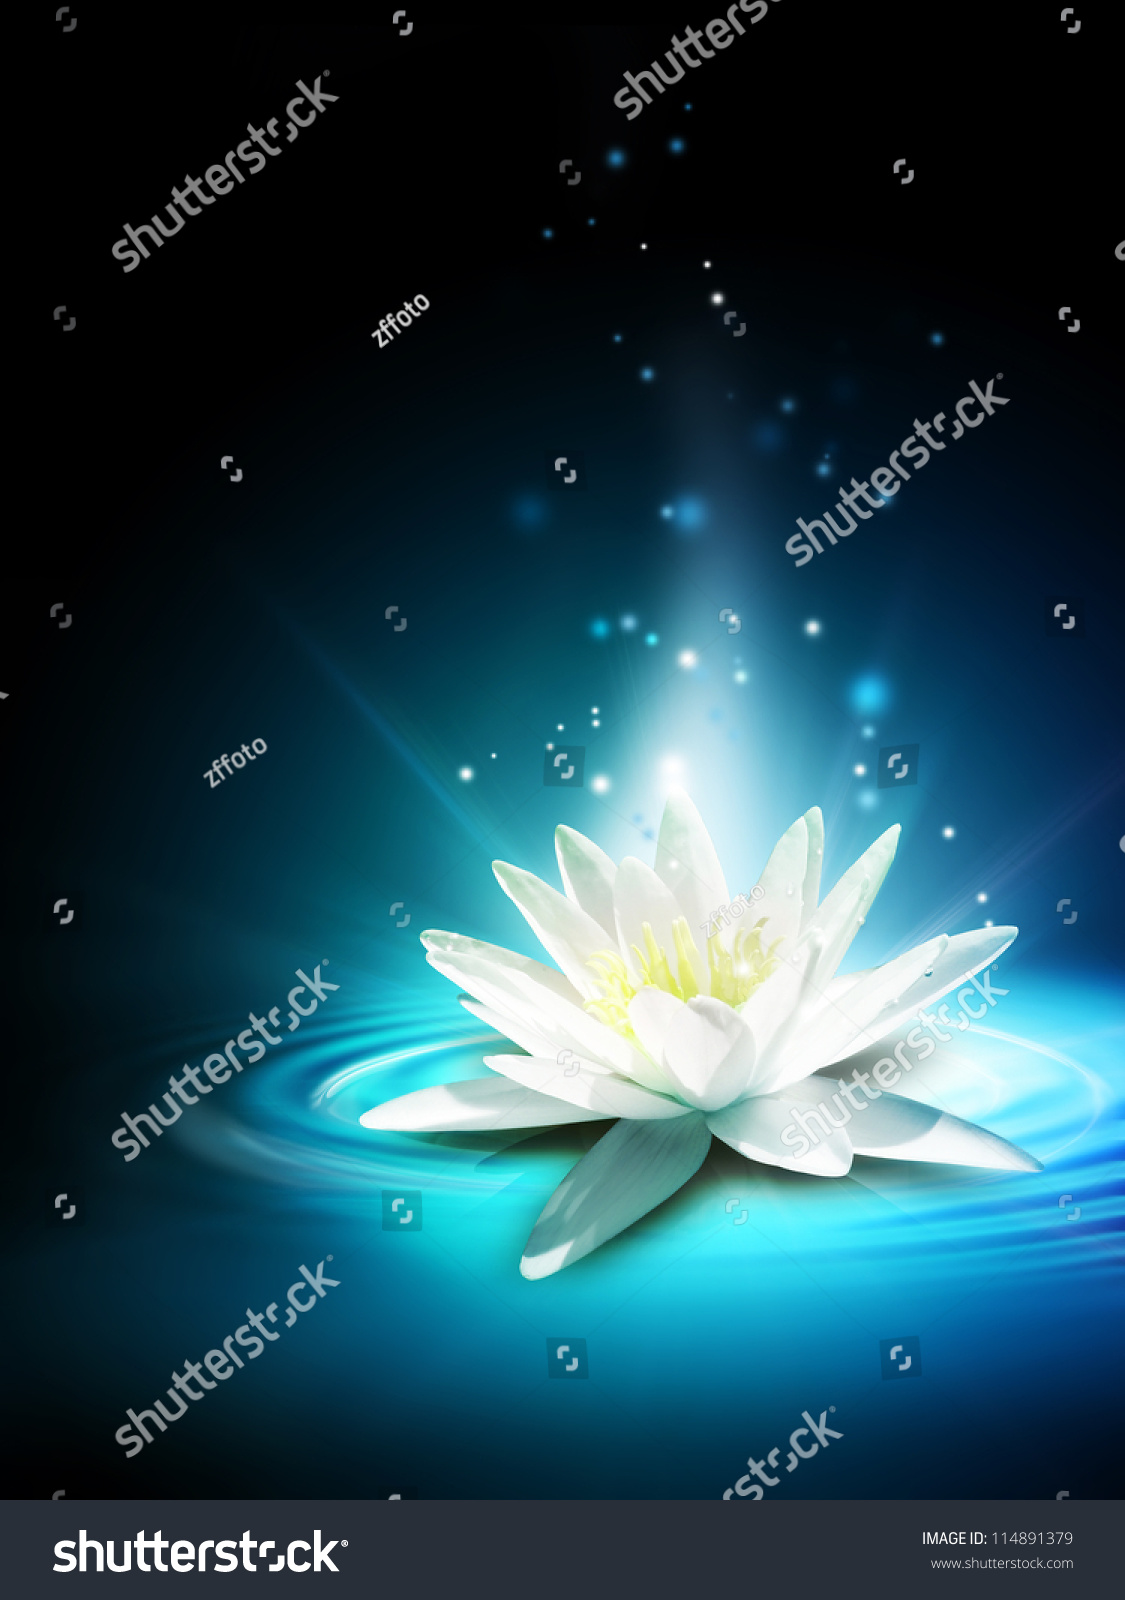 Magic lily flower on water surface stock illustration 114891379 magic lily flower on the water surface izmirmasajfo